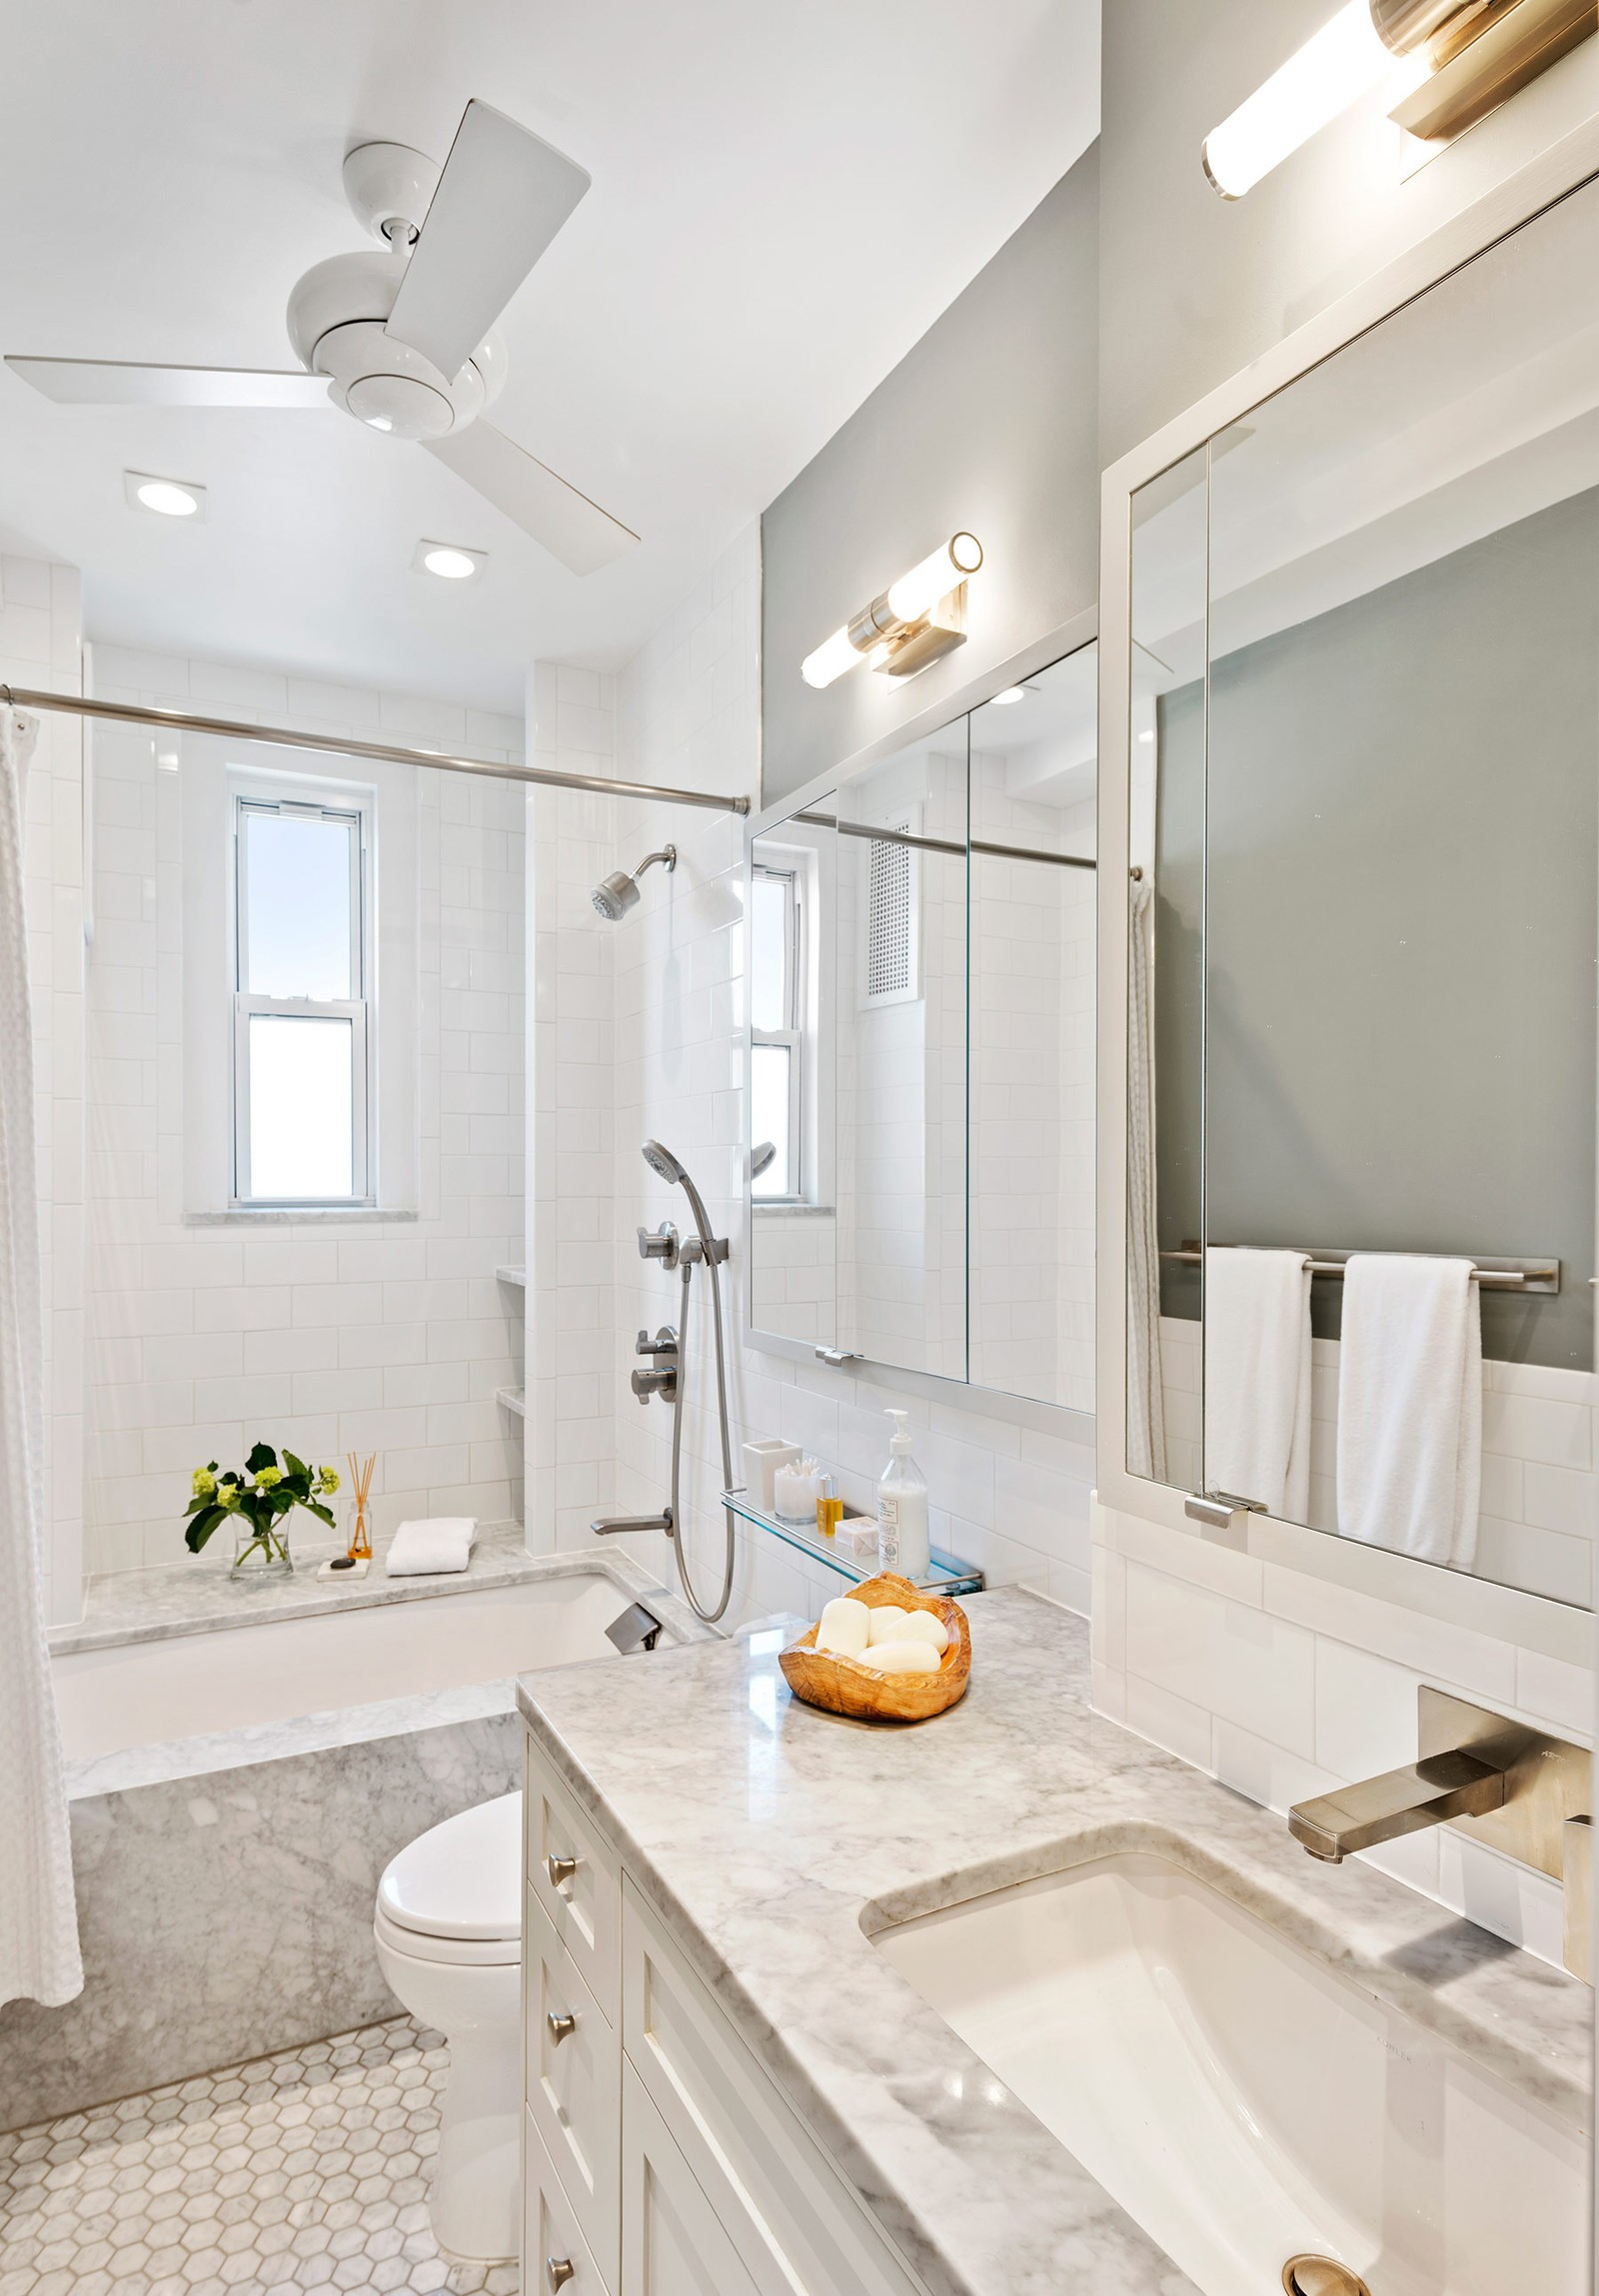 white and marble bathroom with tub, shower and ceiling fan